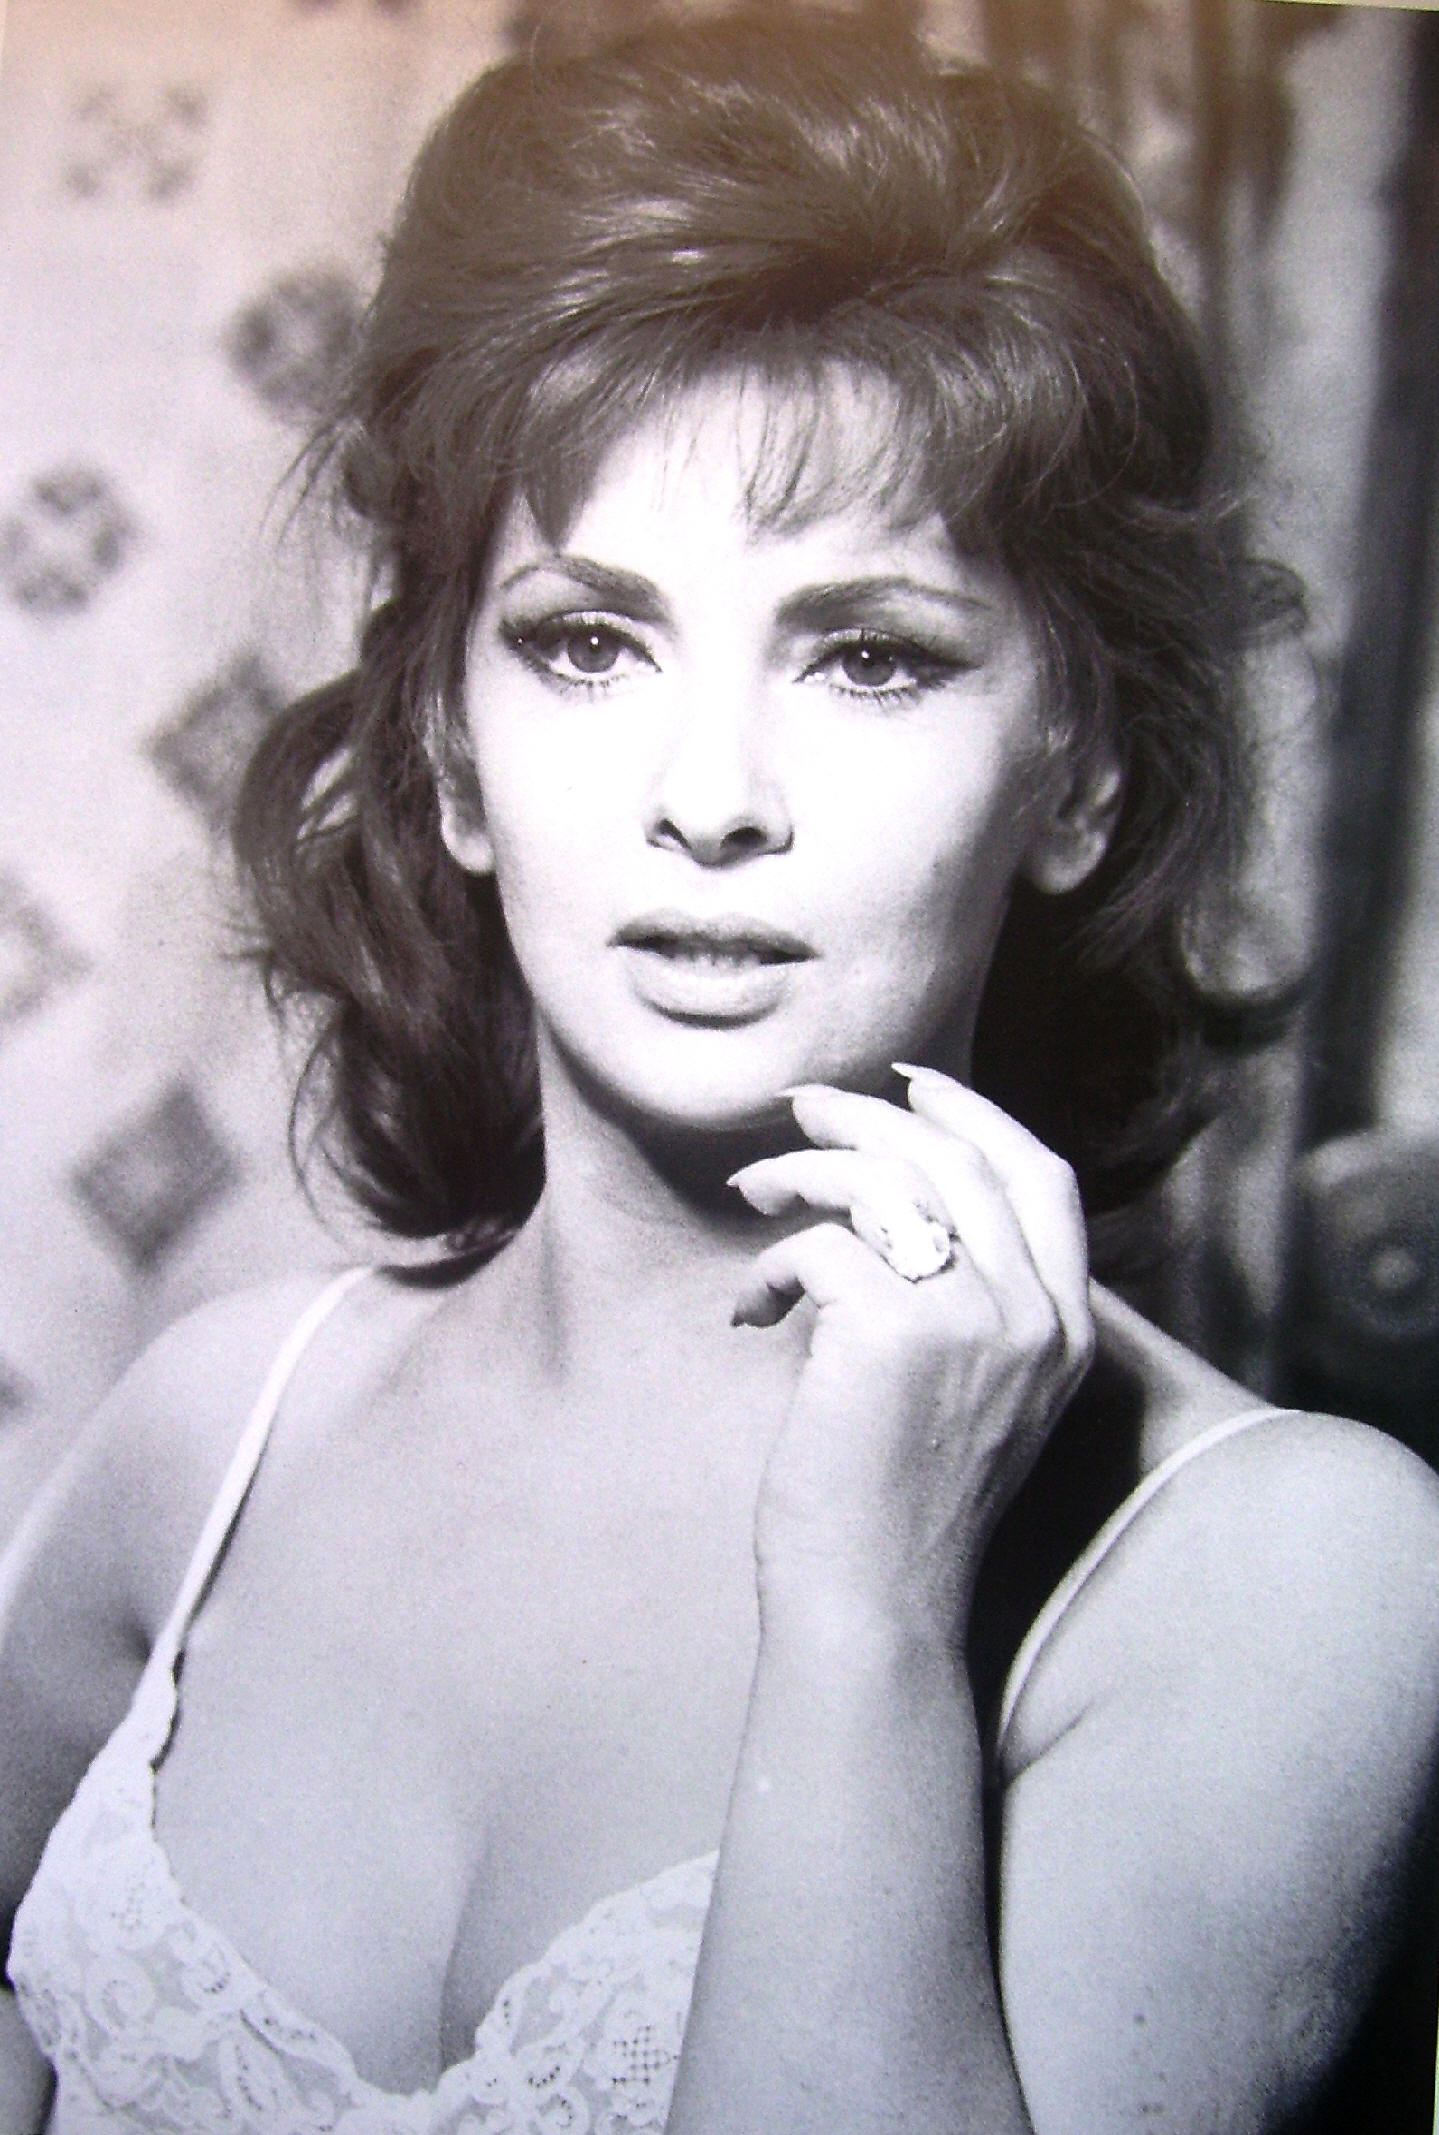 Gina Lollobrigida - Wallpaper Gallery